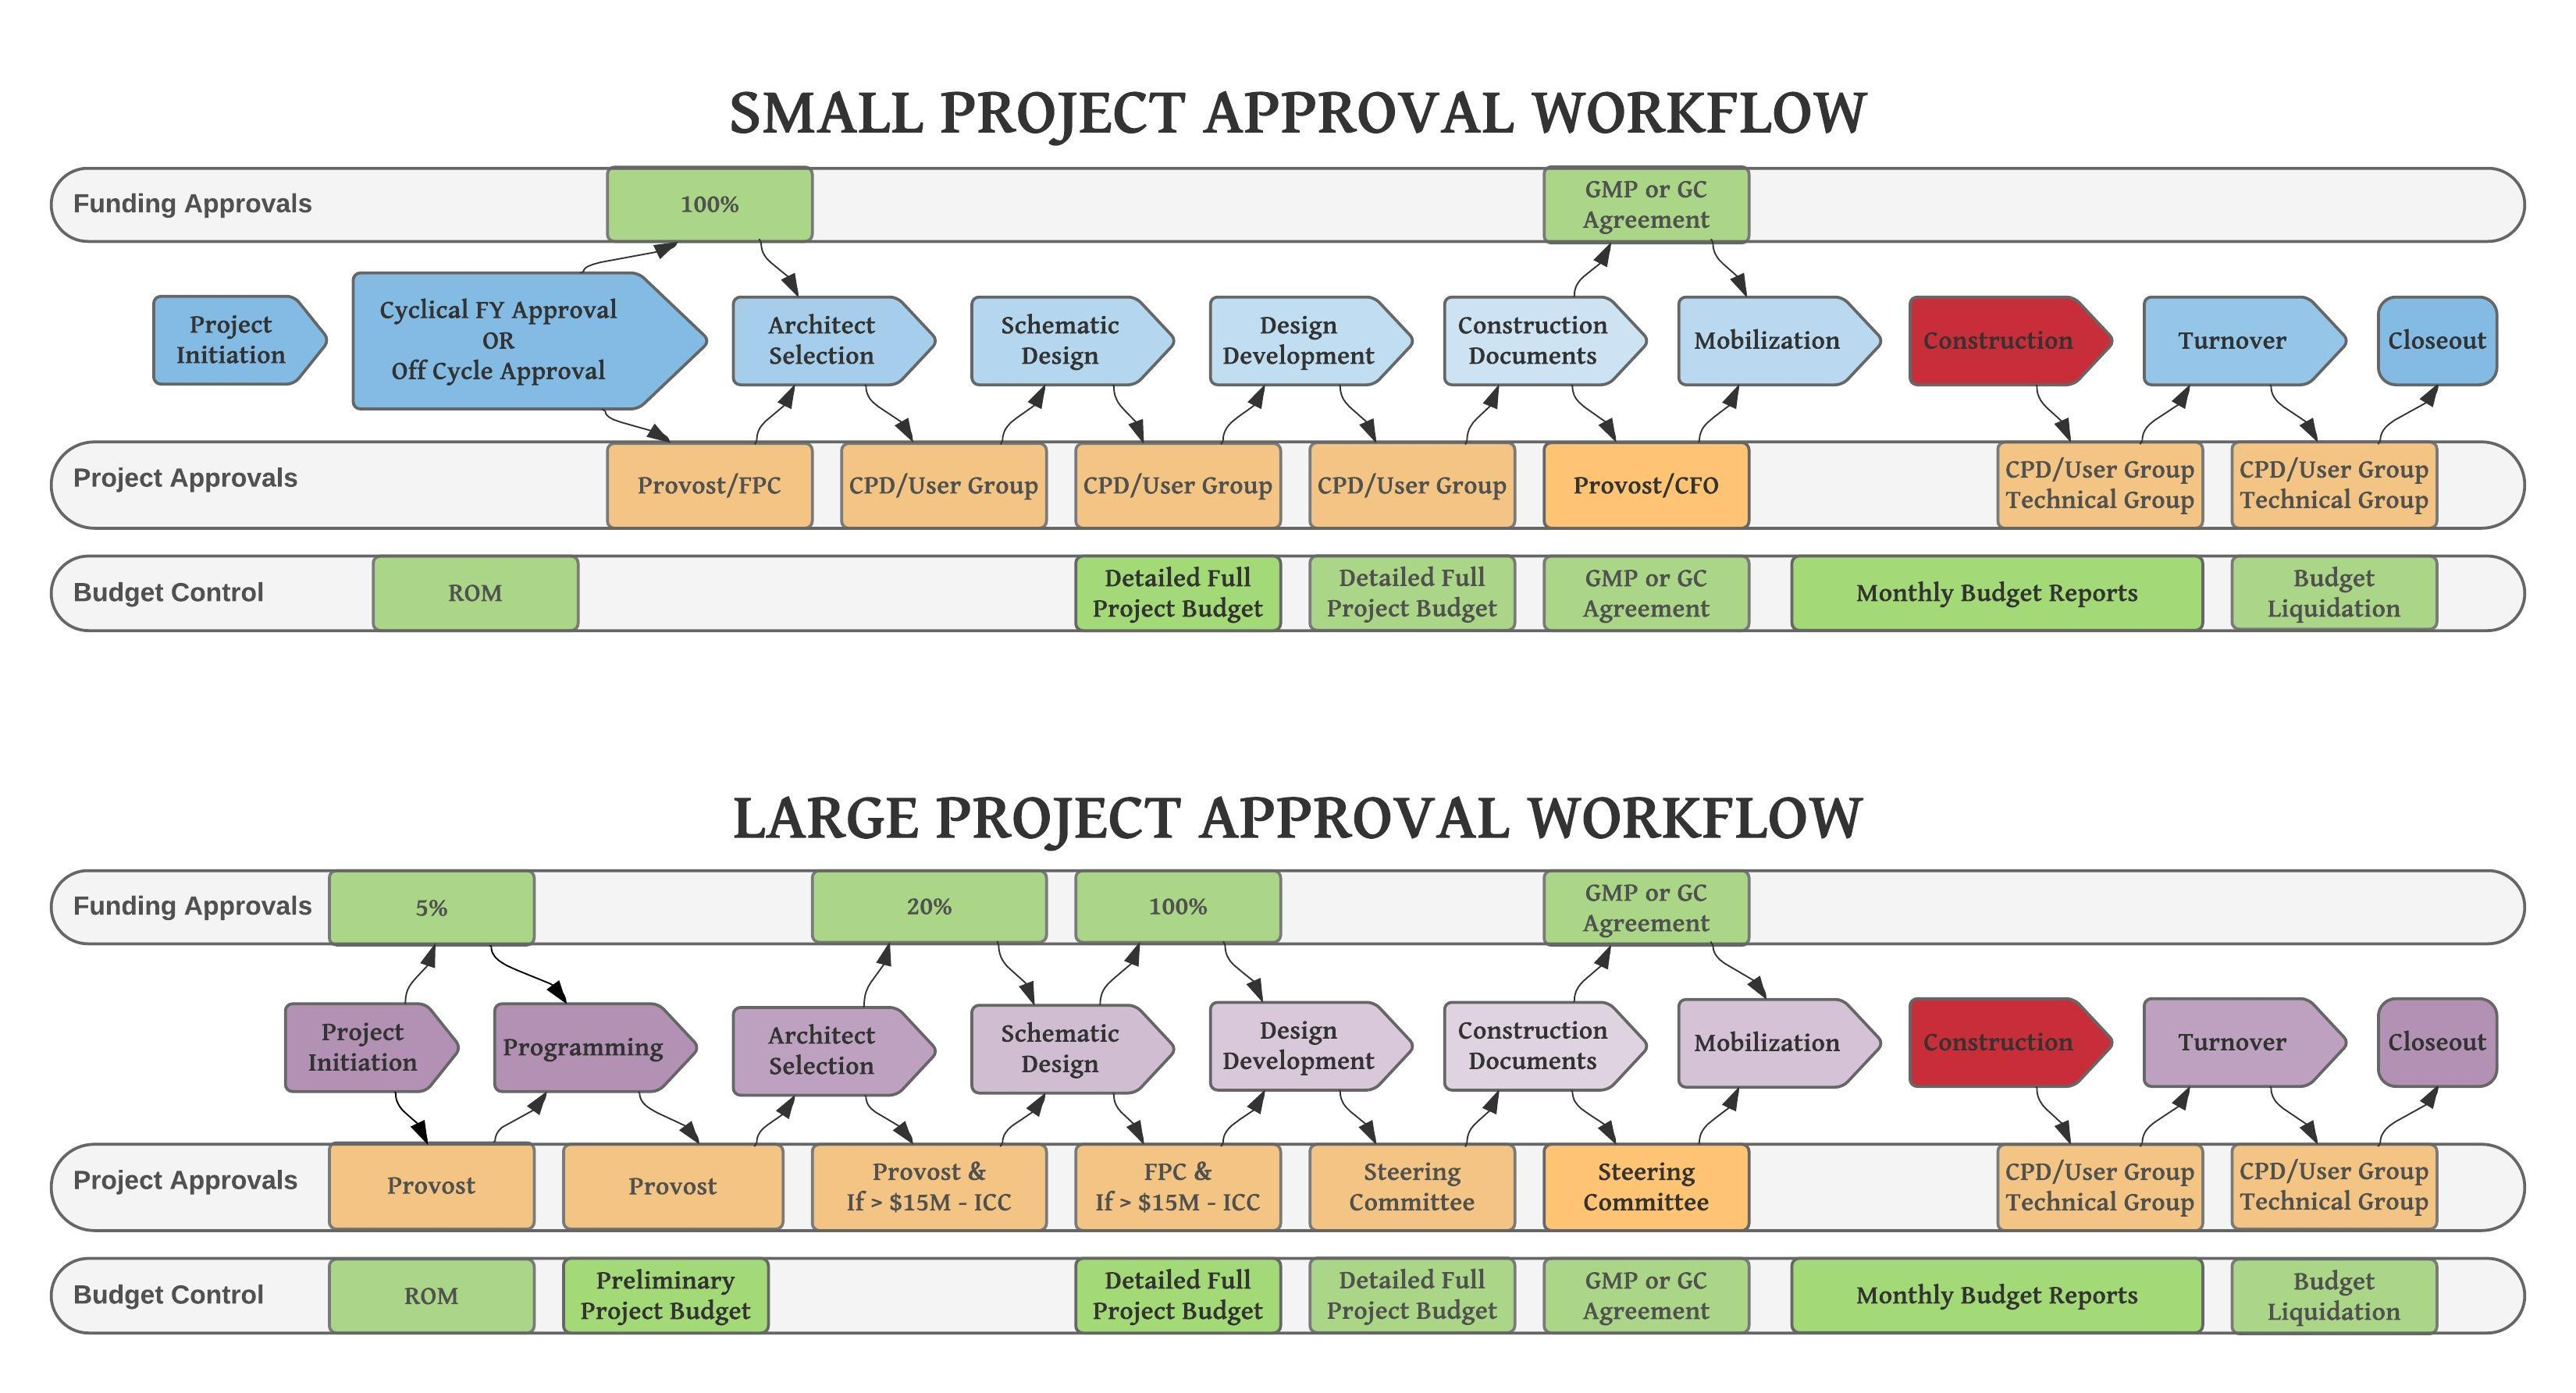 Construction Approval Workflow